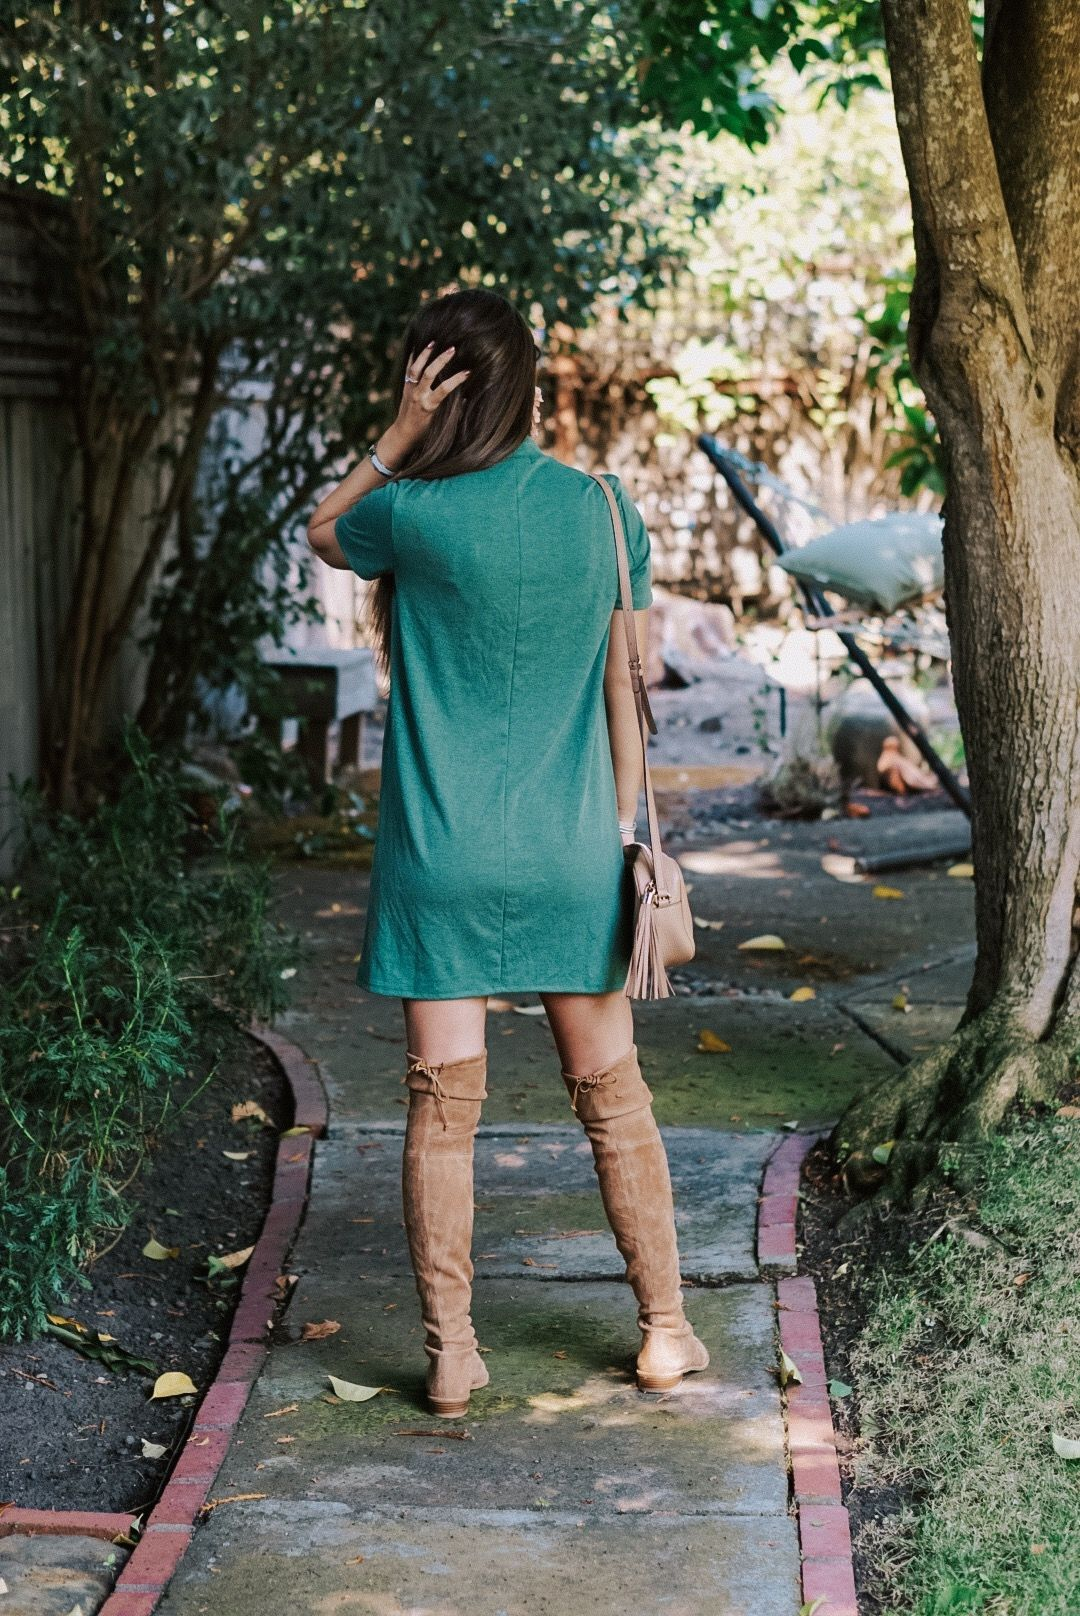 568d24e3c50 Friday Fall Feels with a Forever21 Green Dress